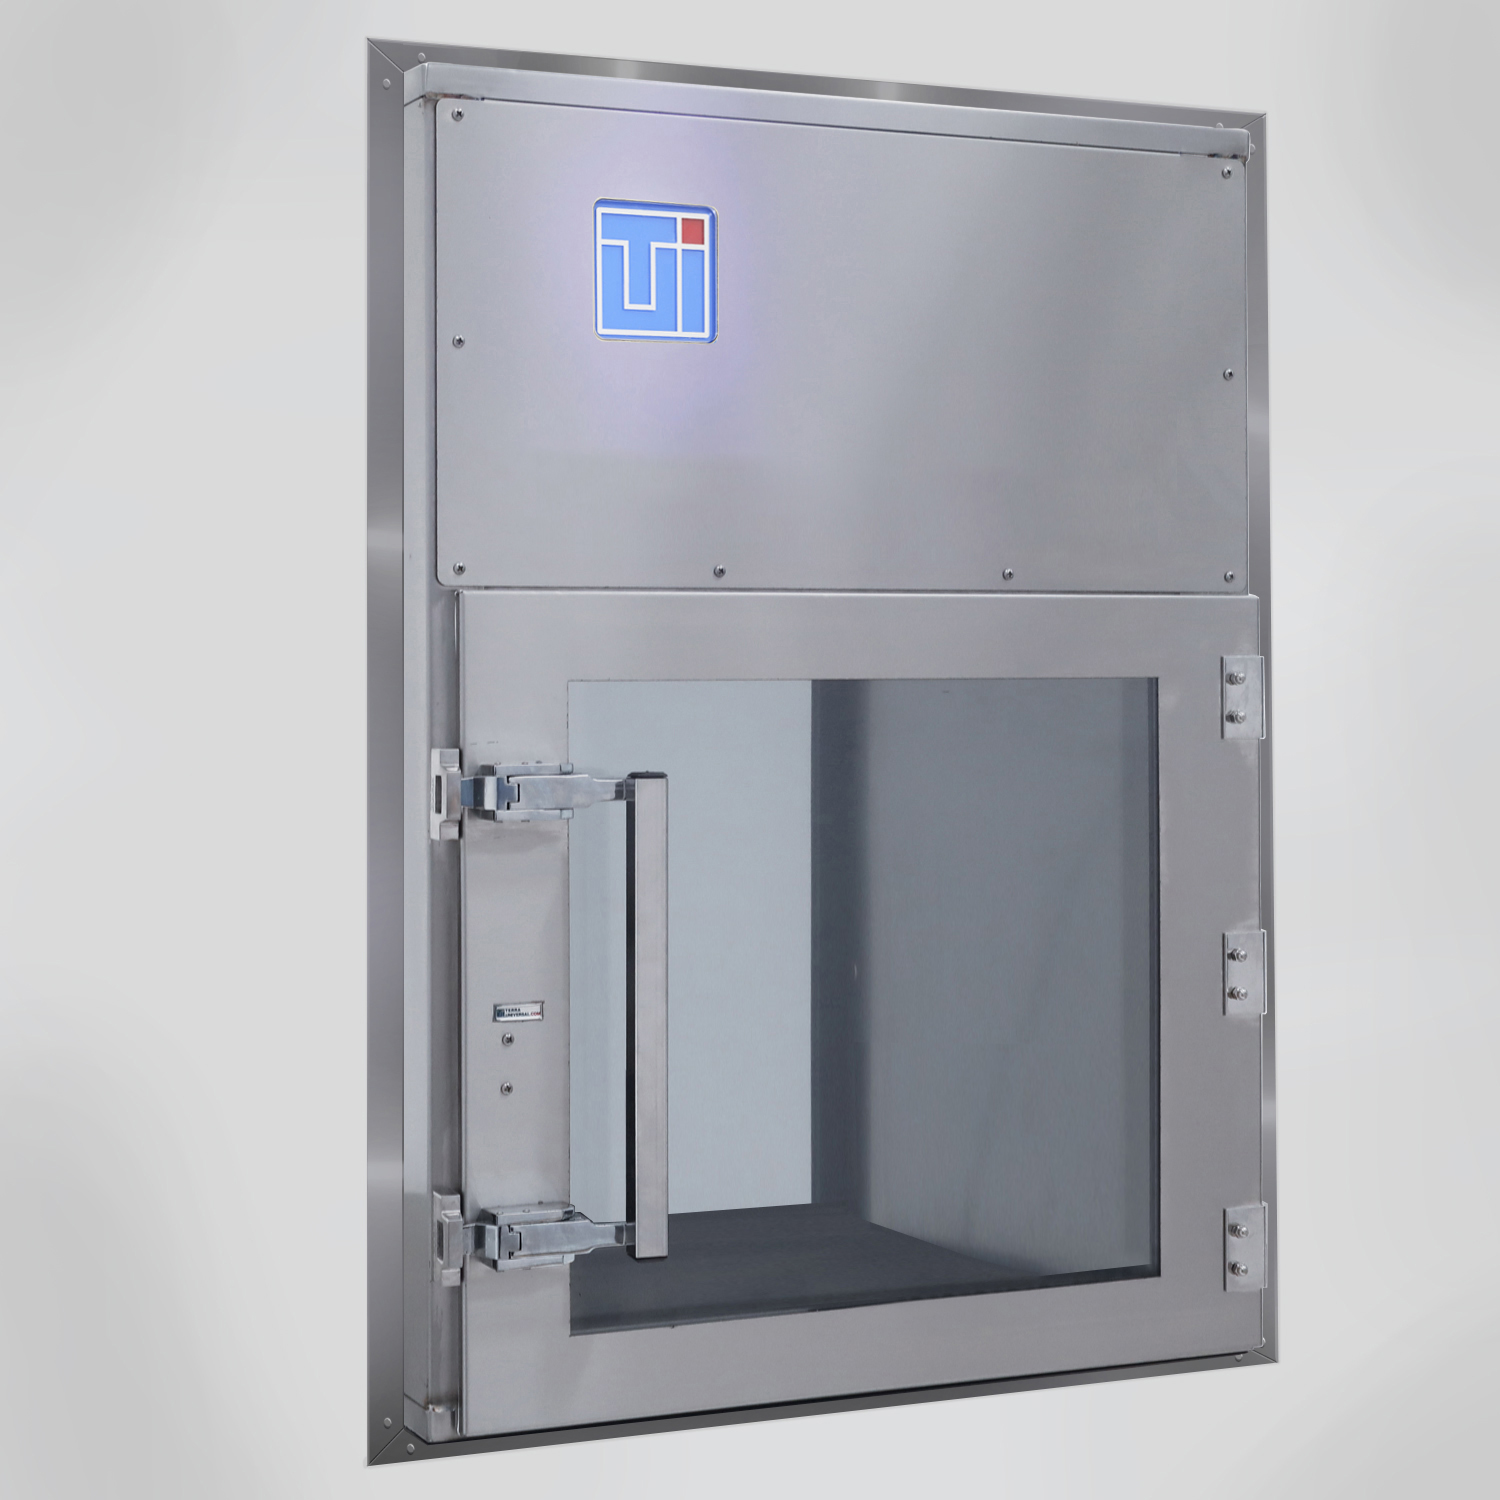 Wall-mounted HEPA-filtered pass-through in 304 stainless steel